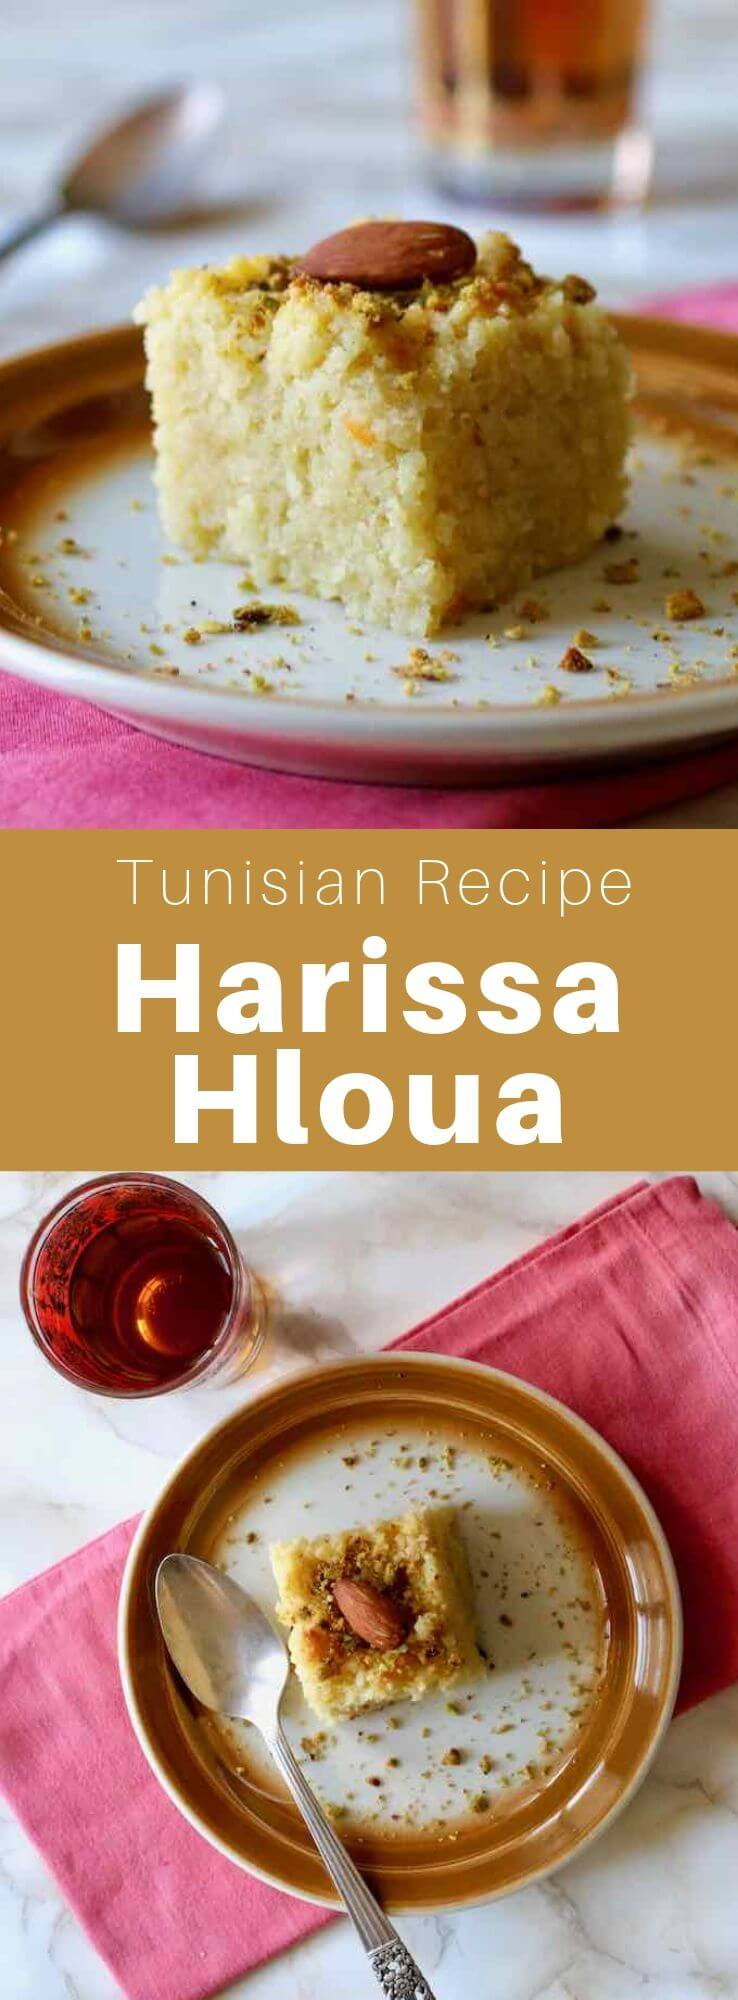 Harissa hloua (or aricha) is a cake prepared with semolina and almond meal that is popular in Tunisia, and that is known in the region under different names. #Tunisia #TunisianRecipe #TunisianCuisine #WorldCuisine #196flavors